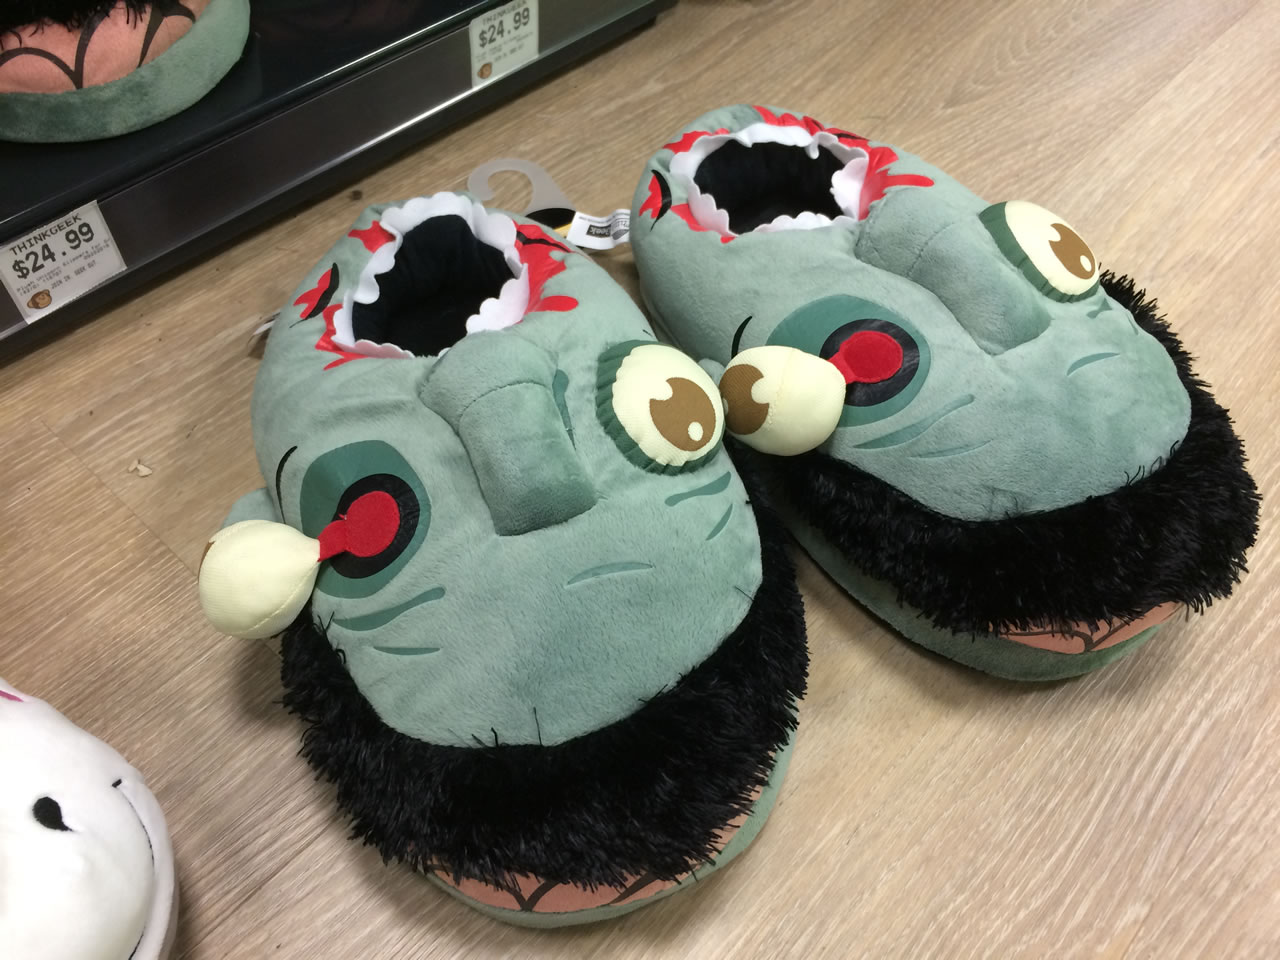 37 thinkgeek store - zombie slippers